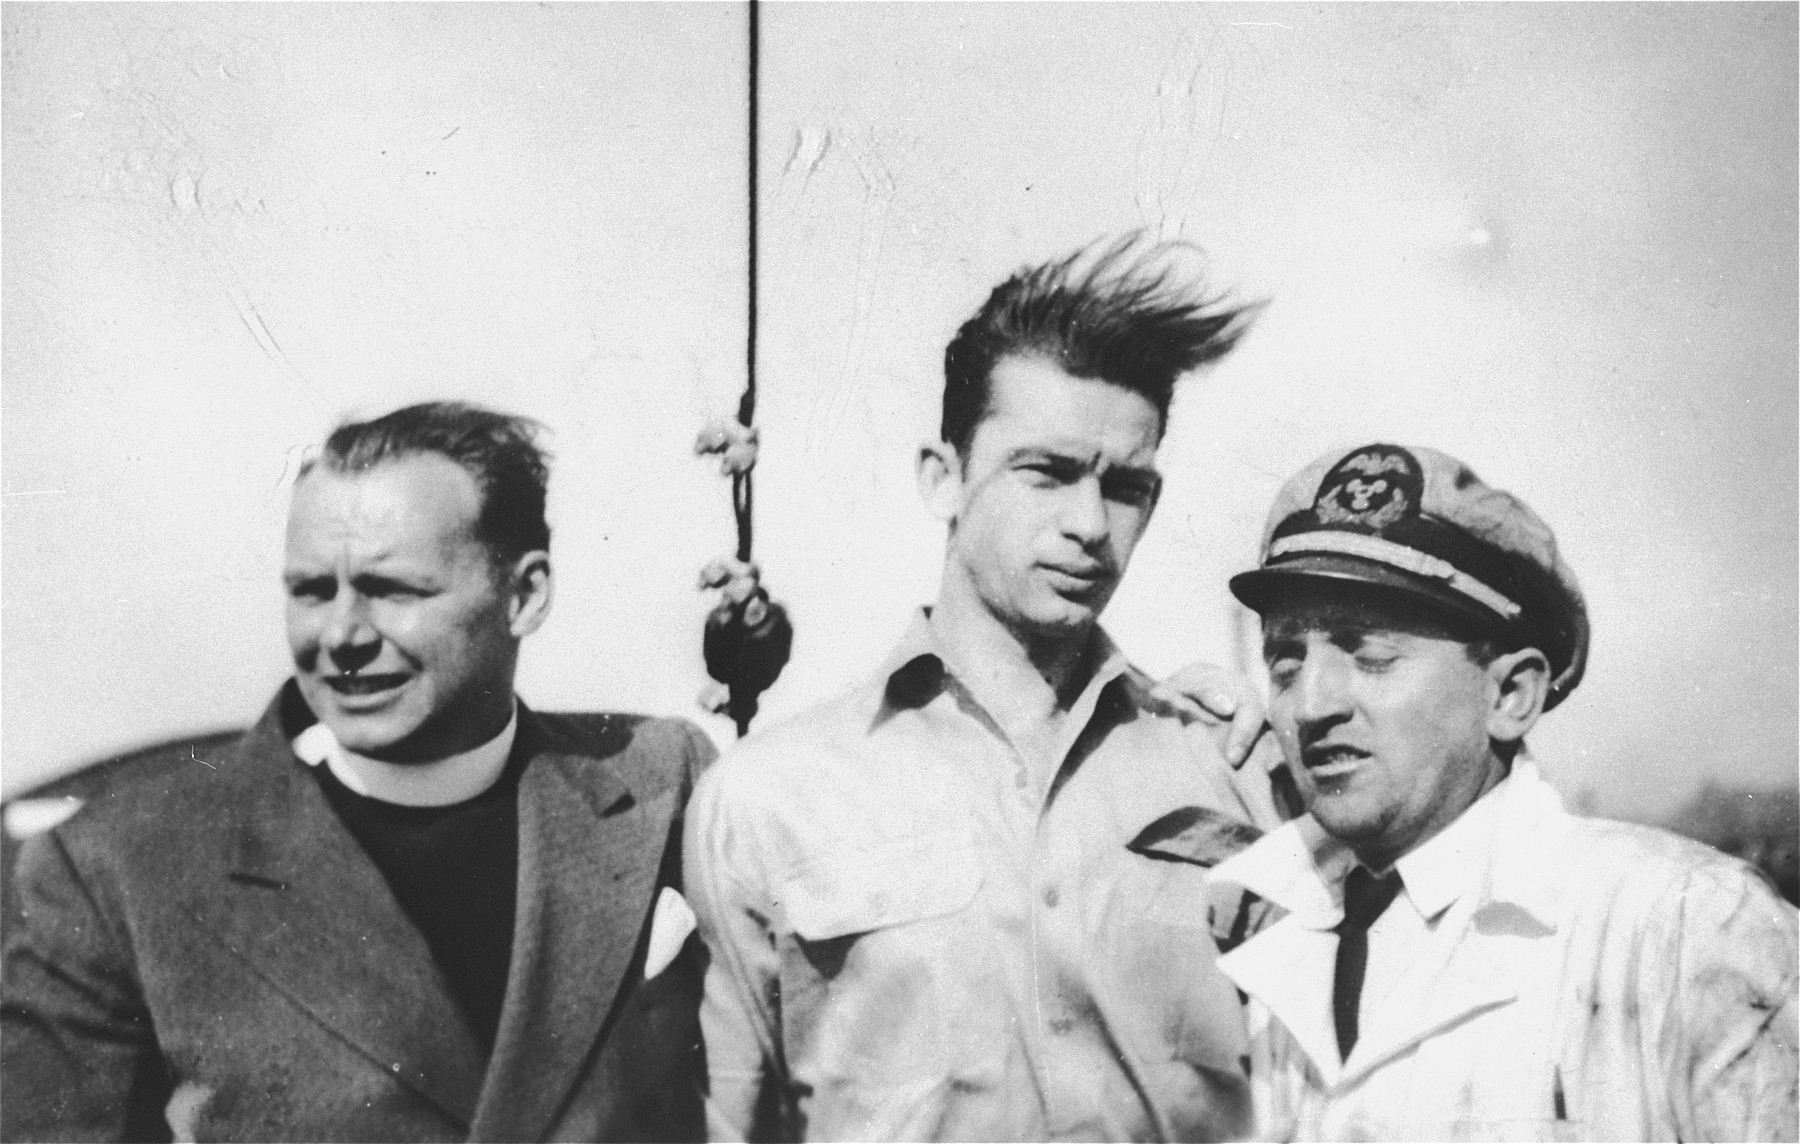 Three crew members pose on the deck of the President Warfield (later the Exodus 1947) before its departure for Europe.    Pictured from left to right are: John Stanley Grauel, Yaakov Oron (Garbash) and Aryeh Kolomeitzev ( later Kole), one of the port engineers who worked on the ship while it was in Baltimore.  He did not sail with the ship.